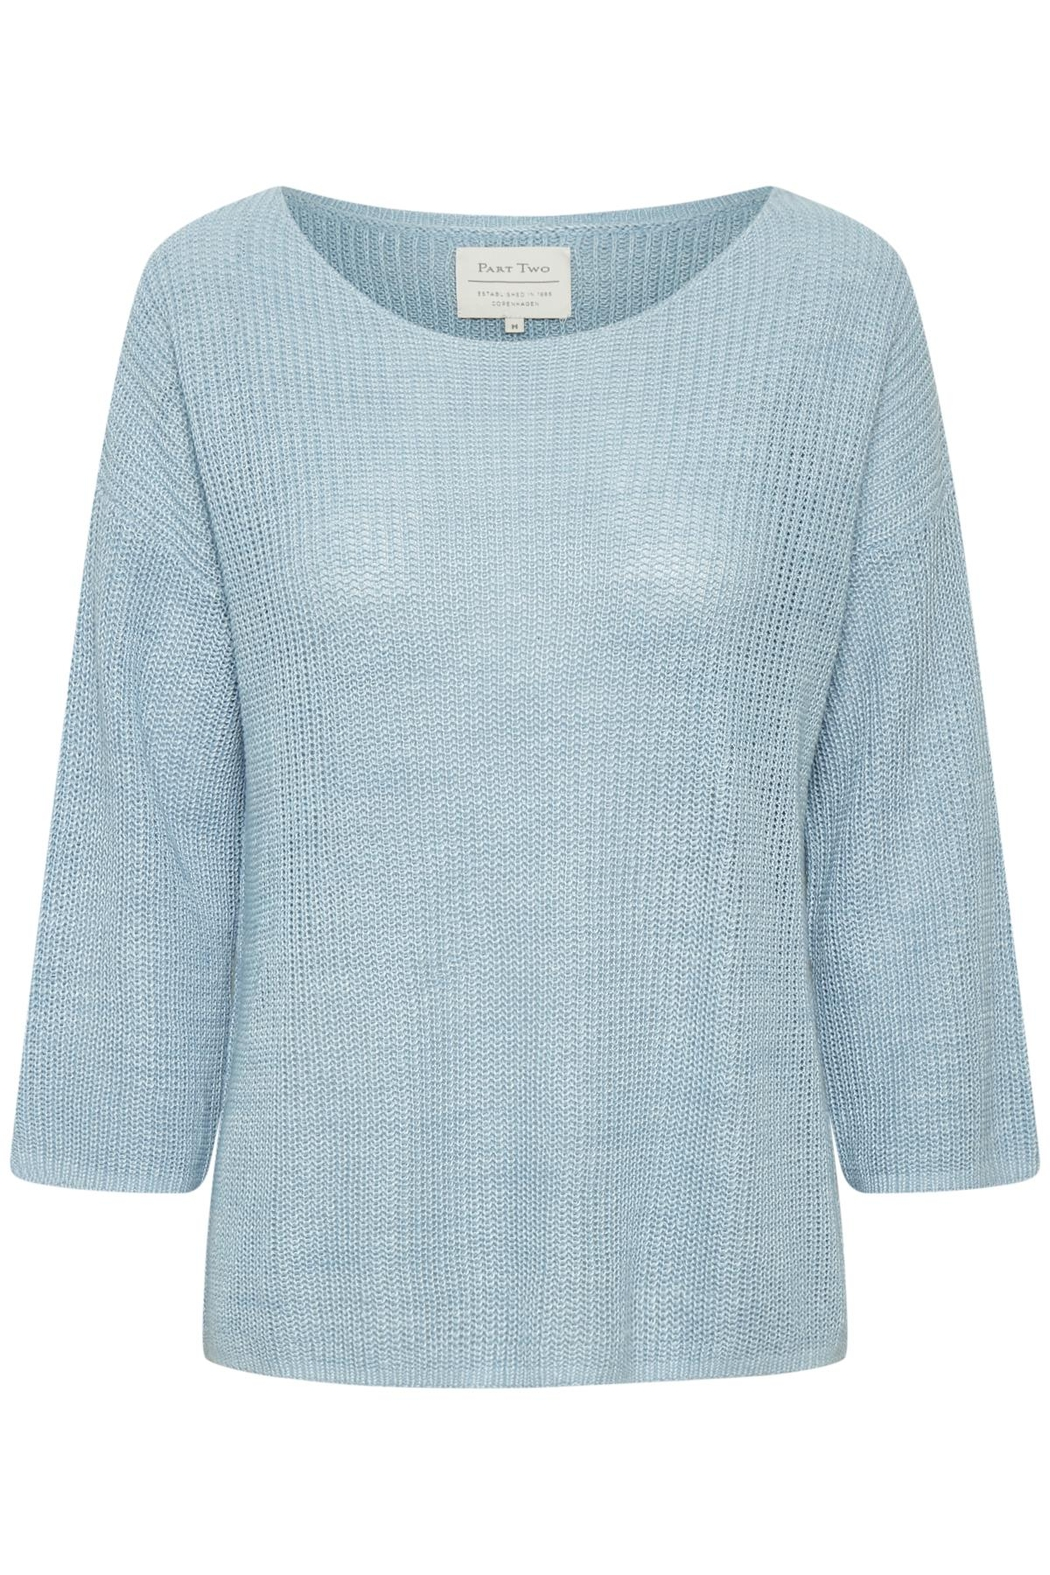 Part Two Cetrona Linen Pullover - Main Image